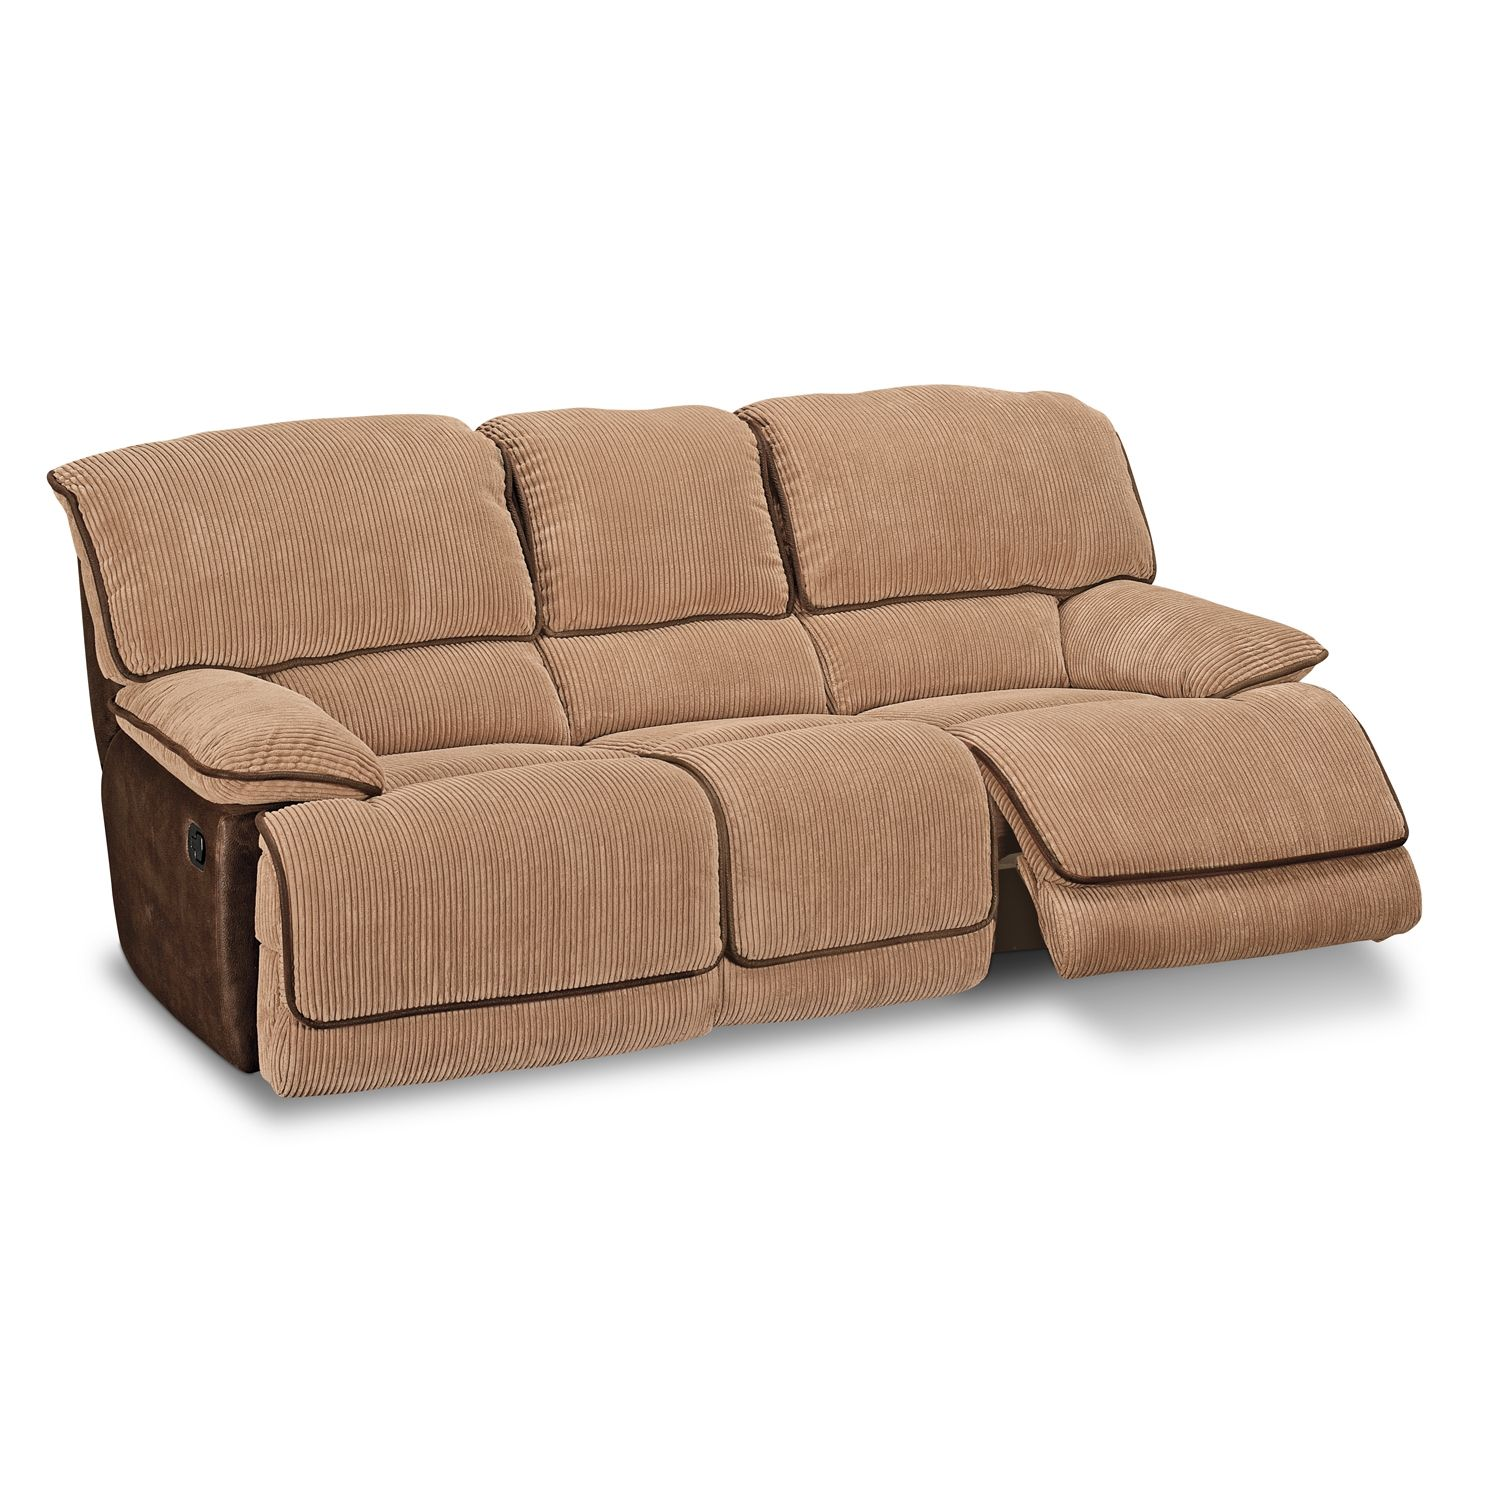 Top 10 Best Reclining Sofa Sets Ultimate Ing Guide